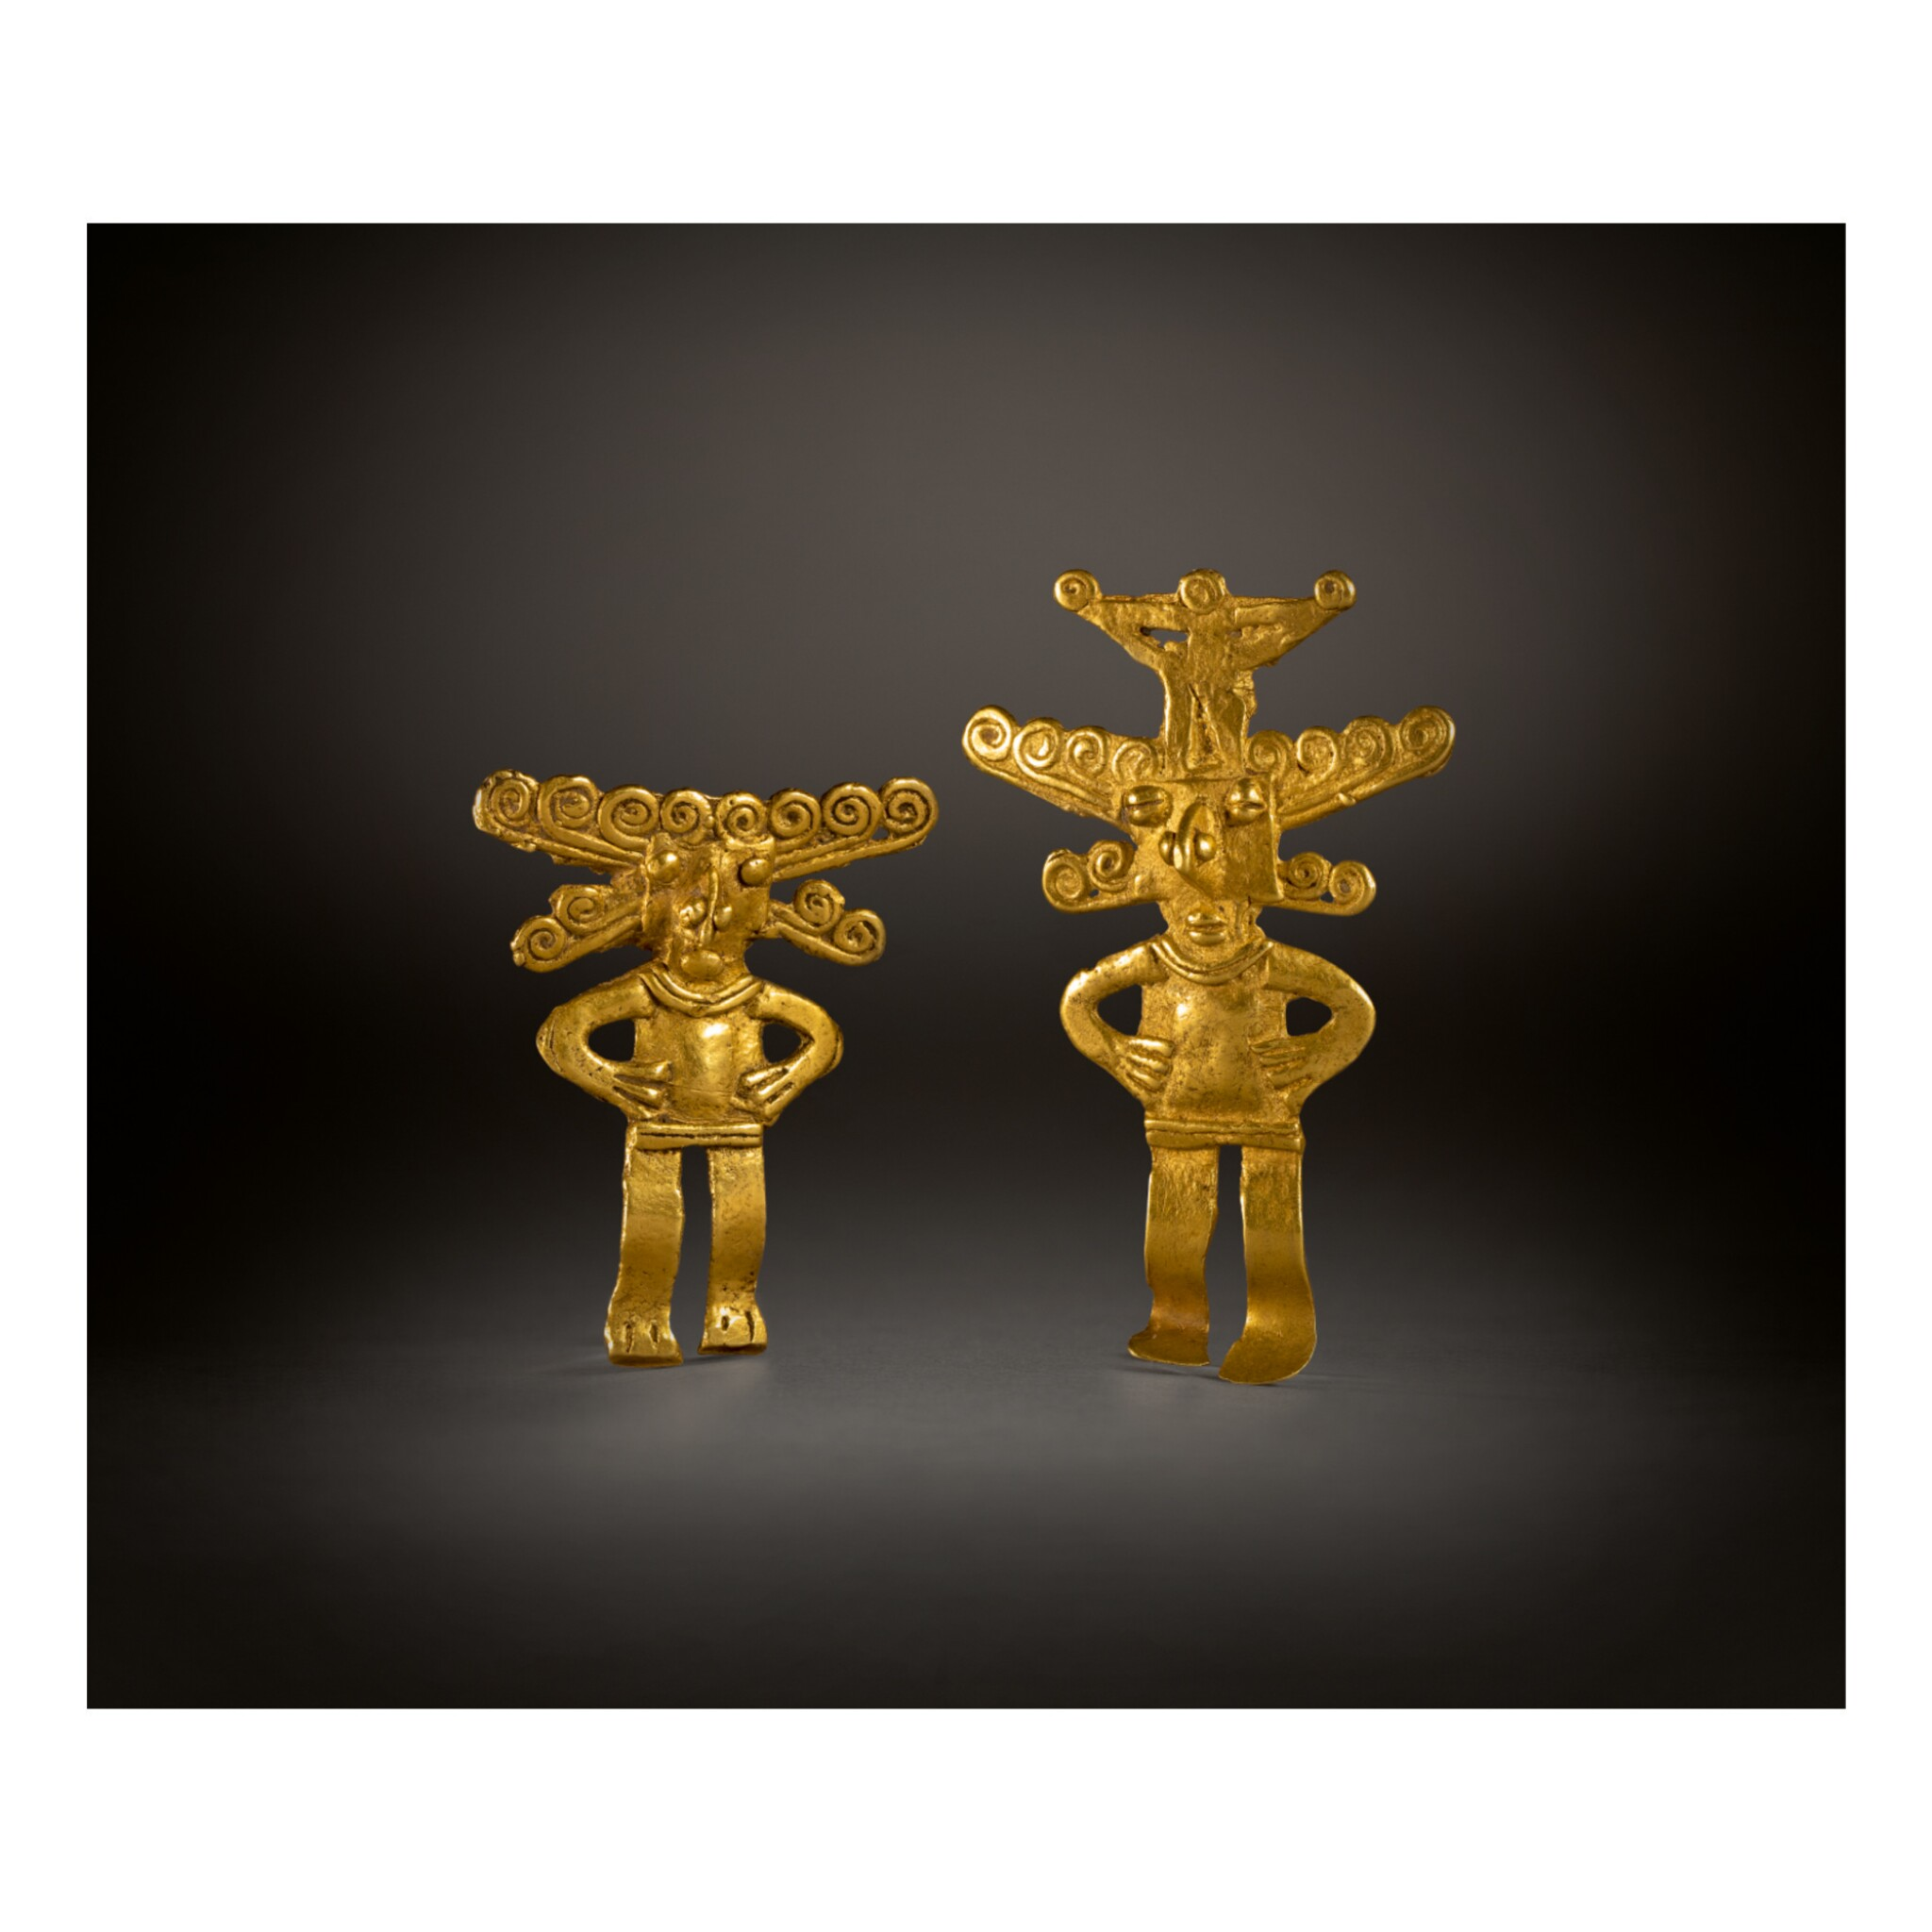 TWO COLOMBIAN GOLD FIGURAL ORNAMENTS, TOLIMA OR QUIMBAYA REGION CIRCA AD 500-1000